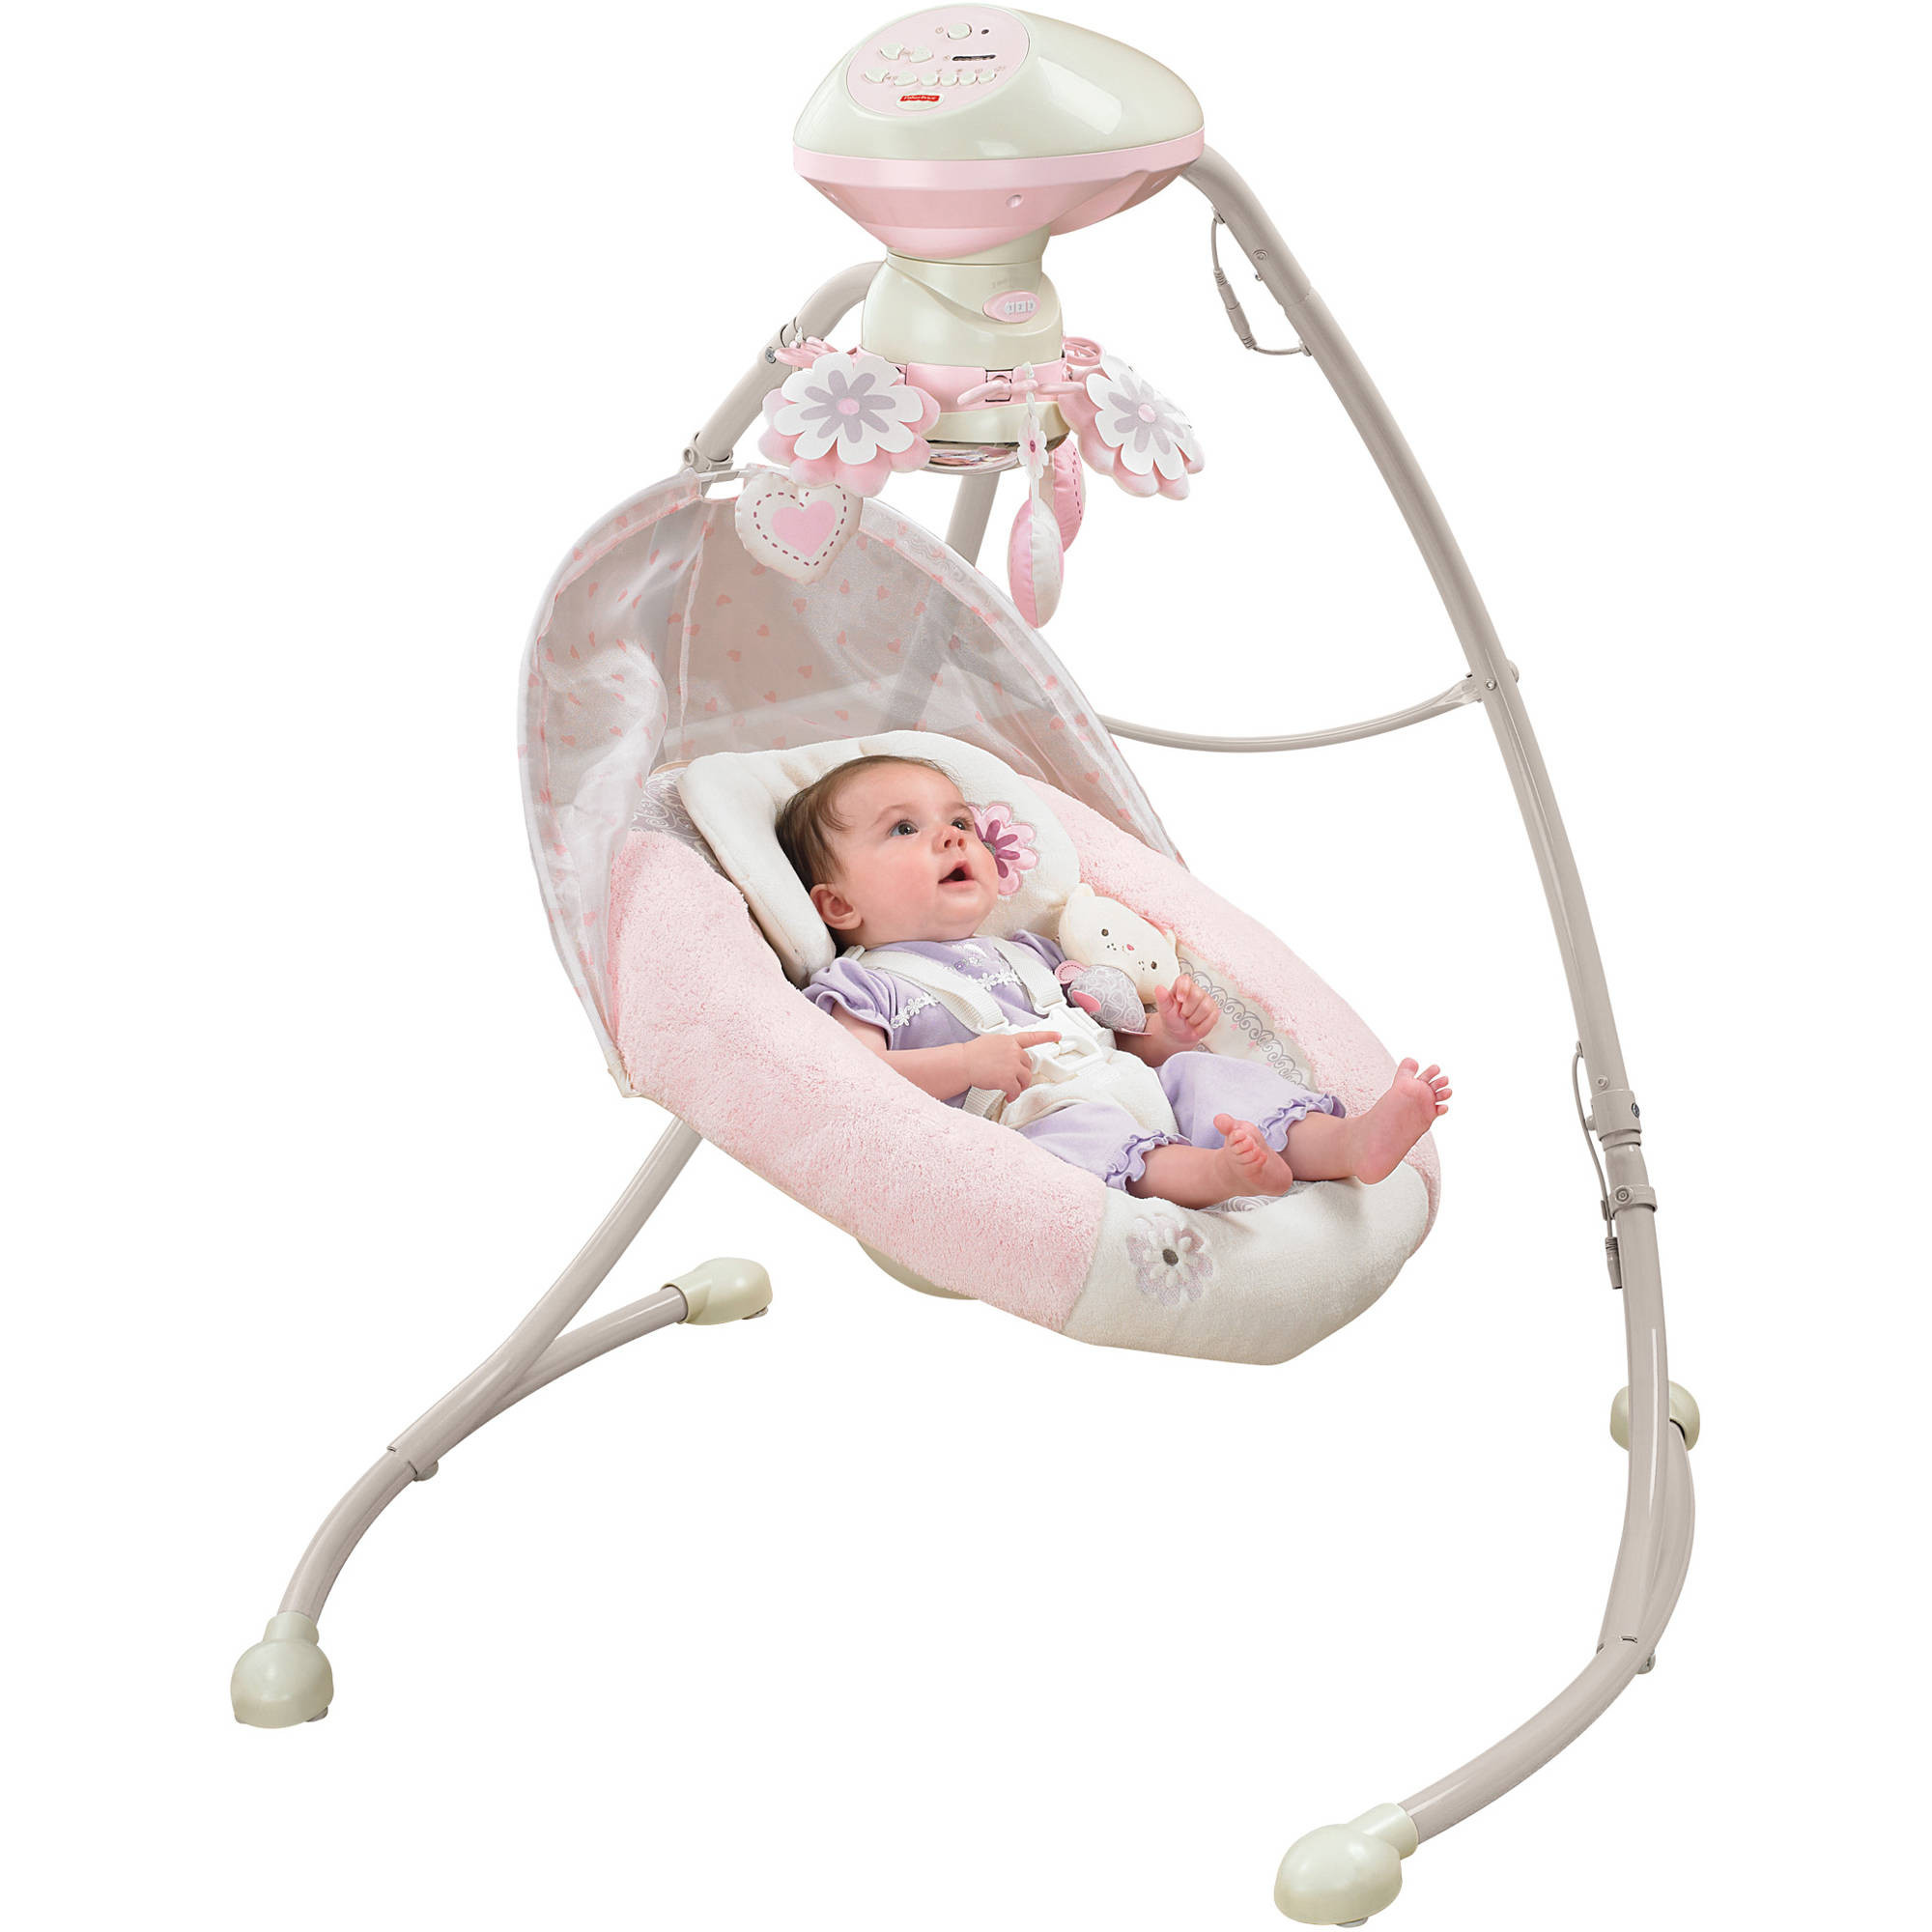 The Top 20 Ideas About Fisher Price Baby Swing Best